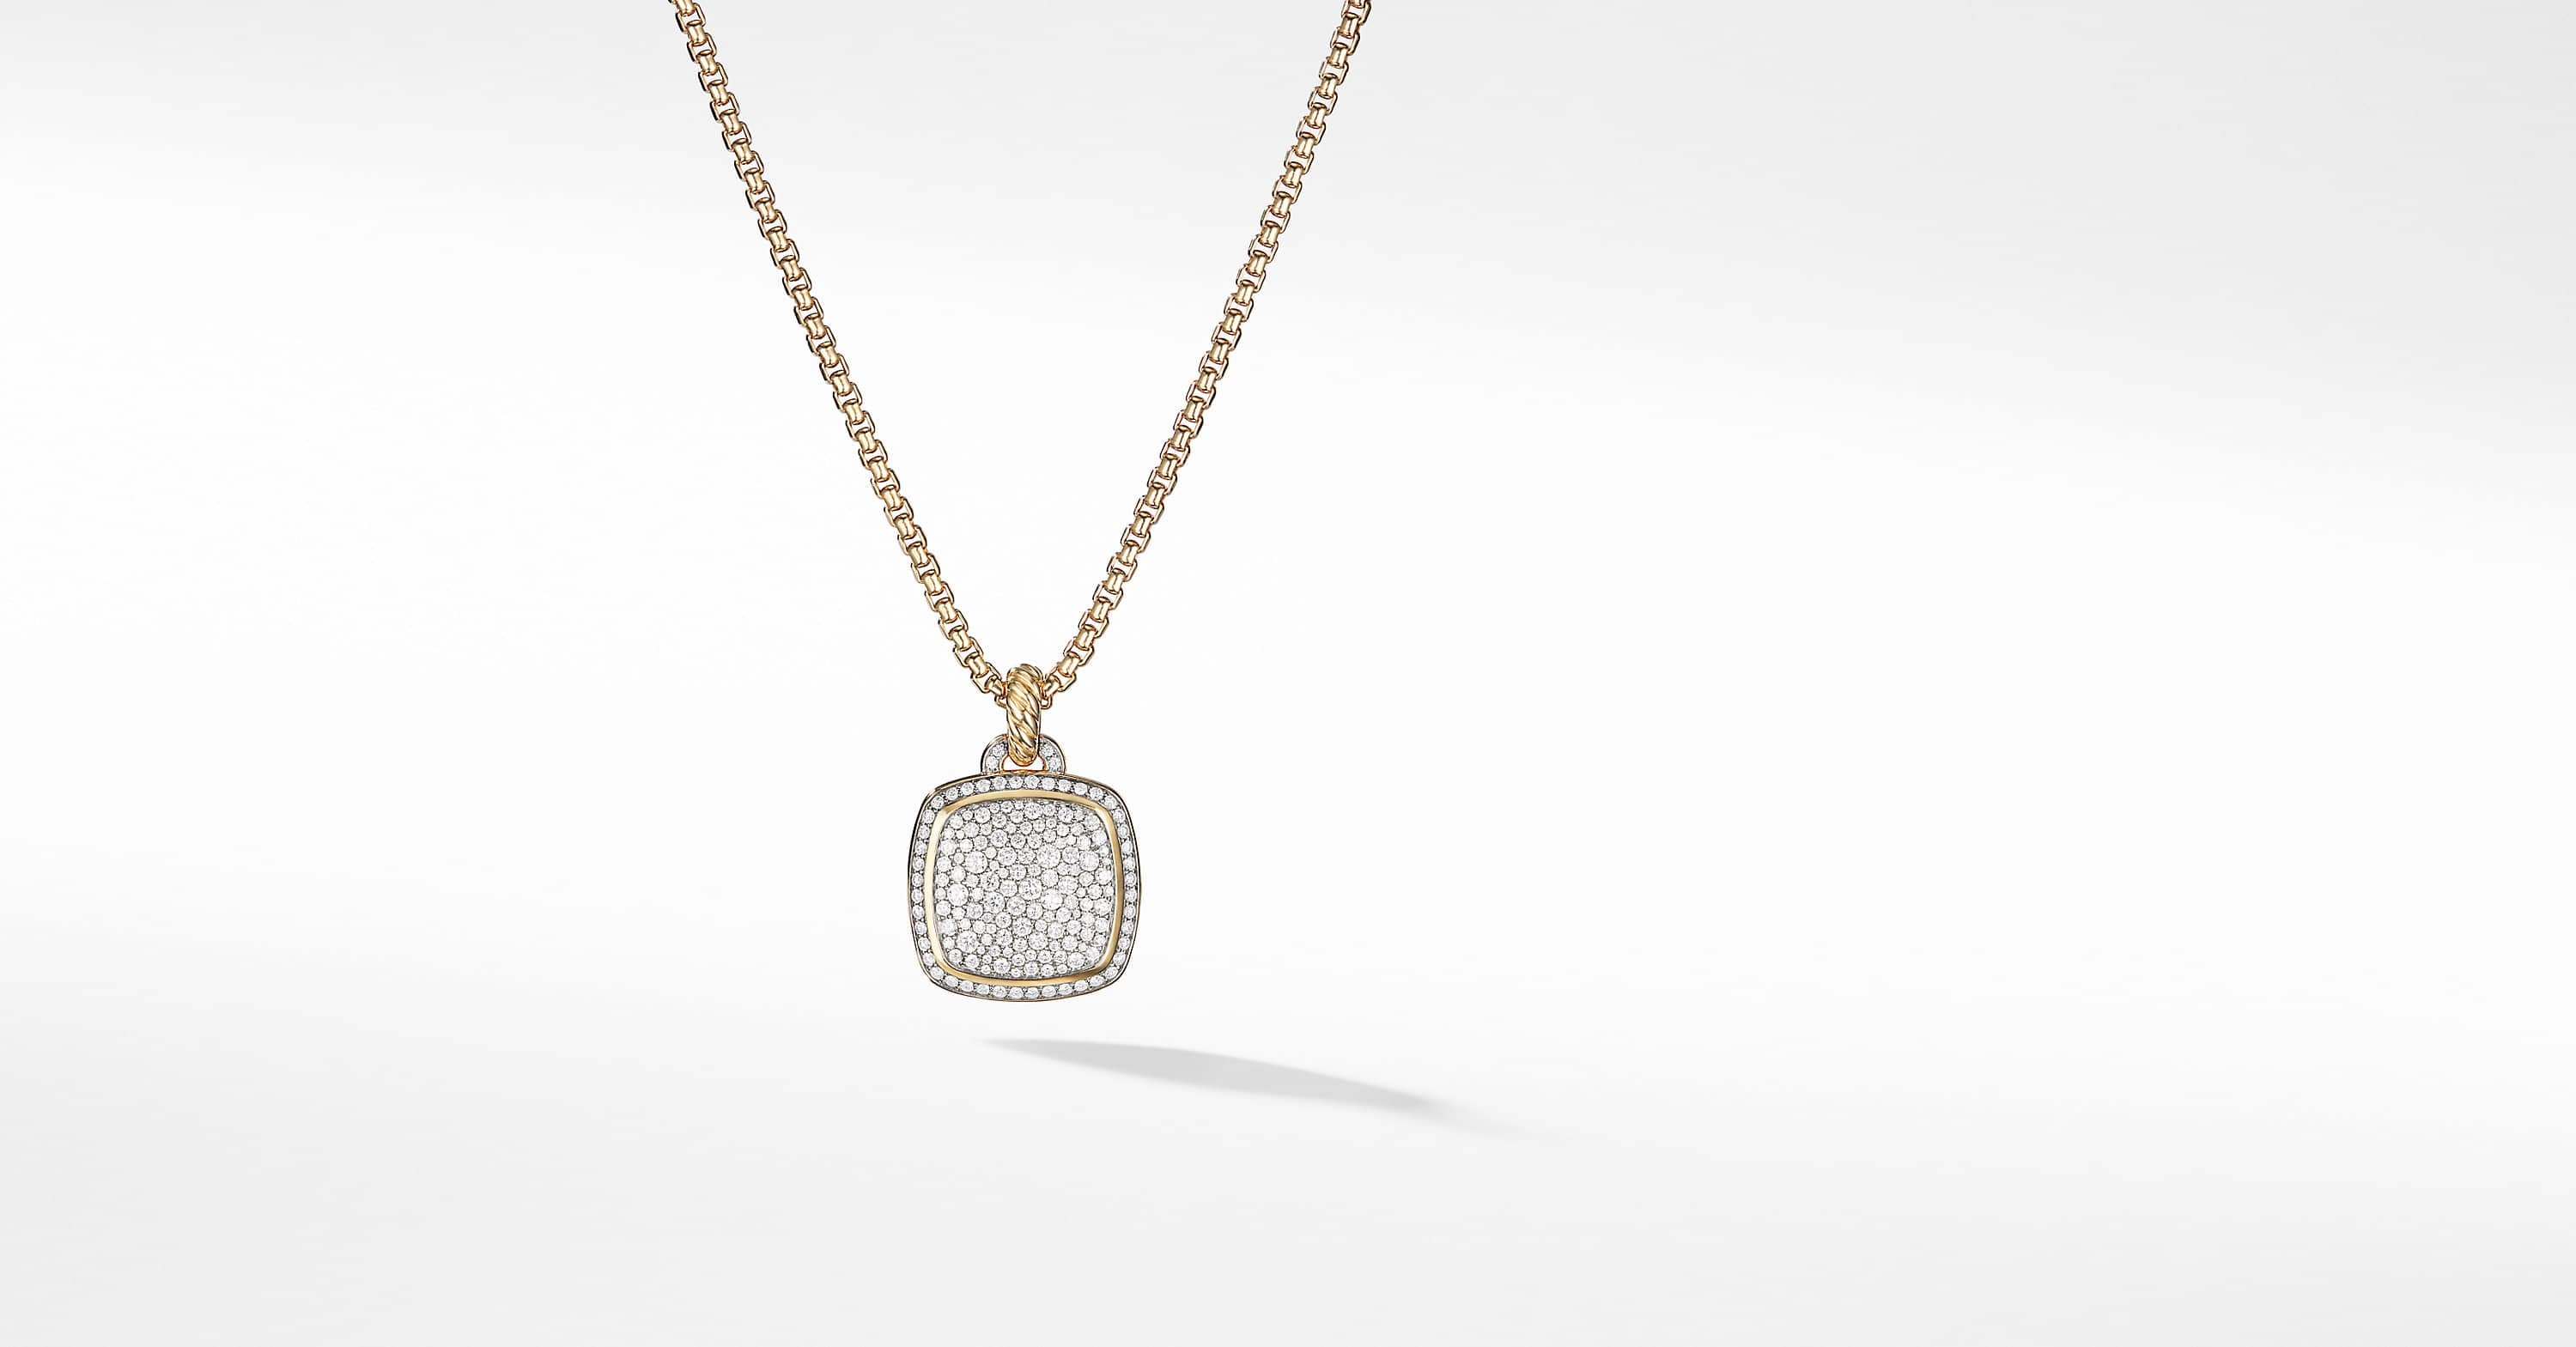 Albion Pendant with Diamonds in 18K Gold, 17mm